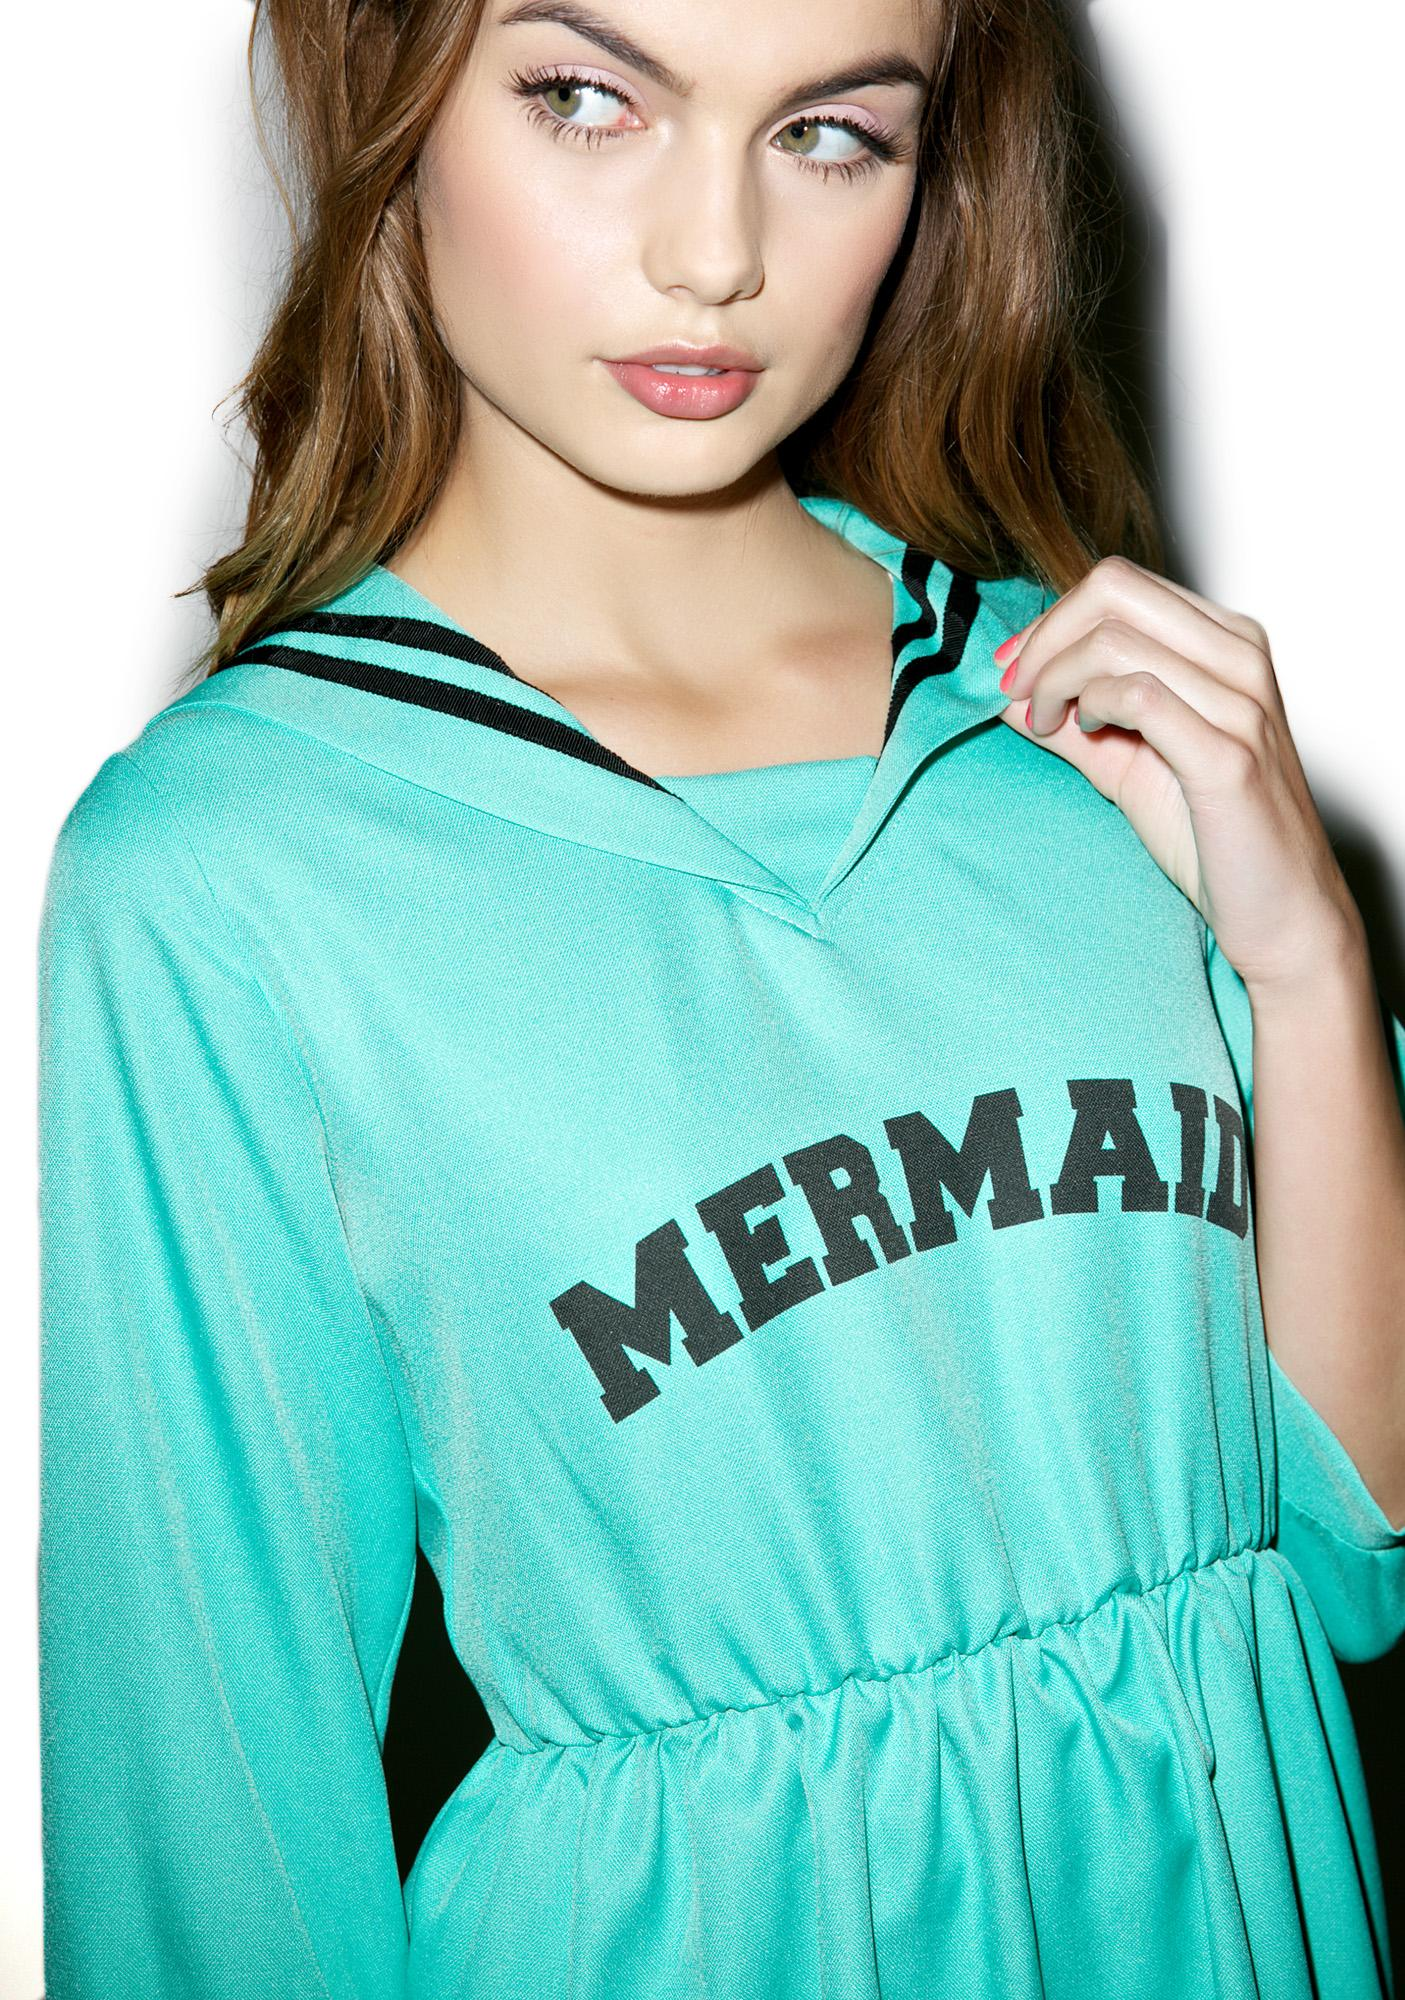 Mermaid Magica Sailor Dress